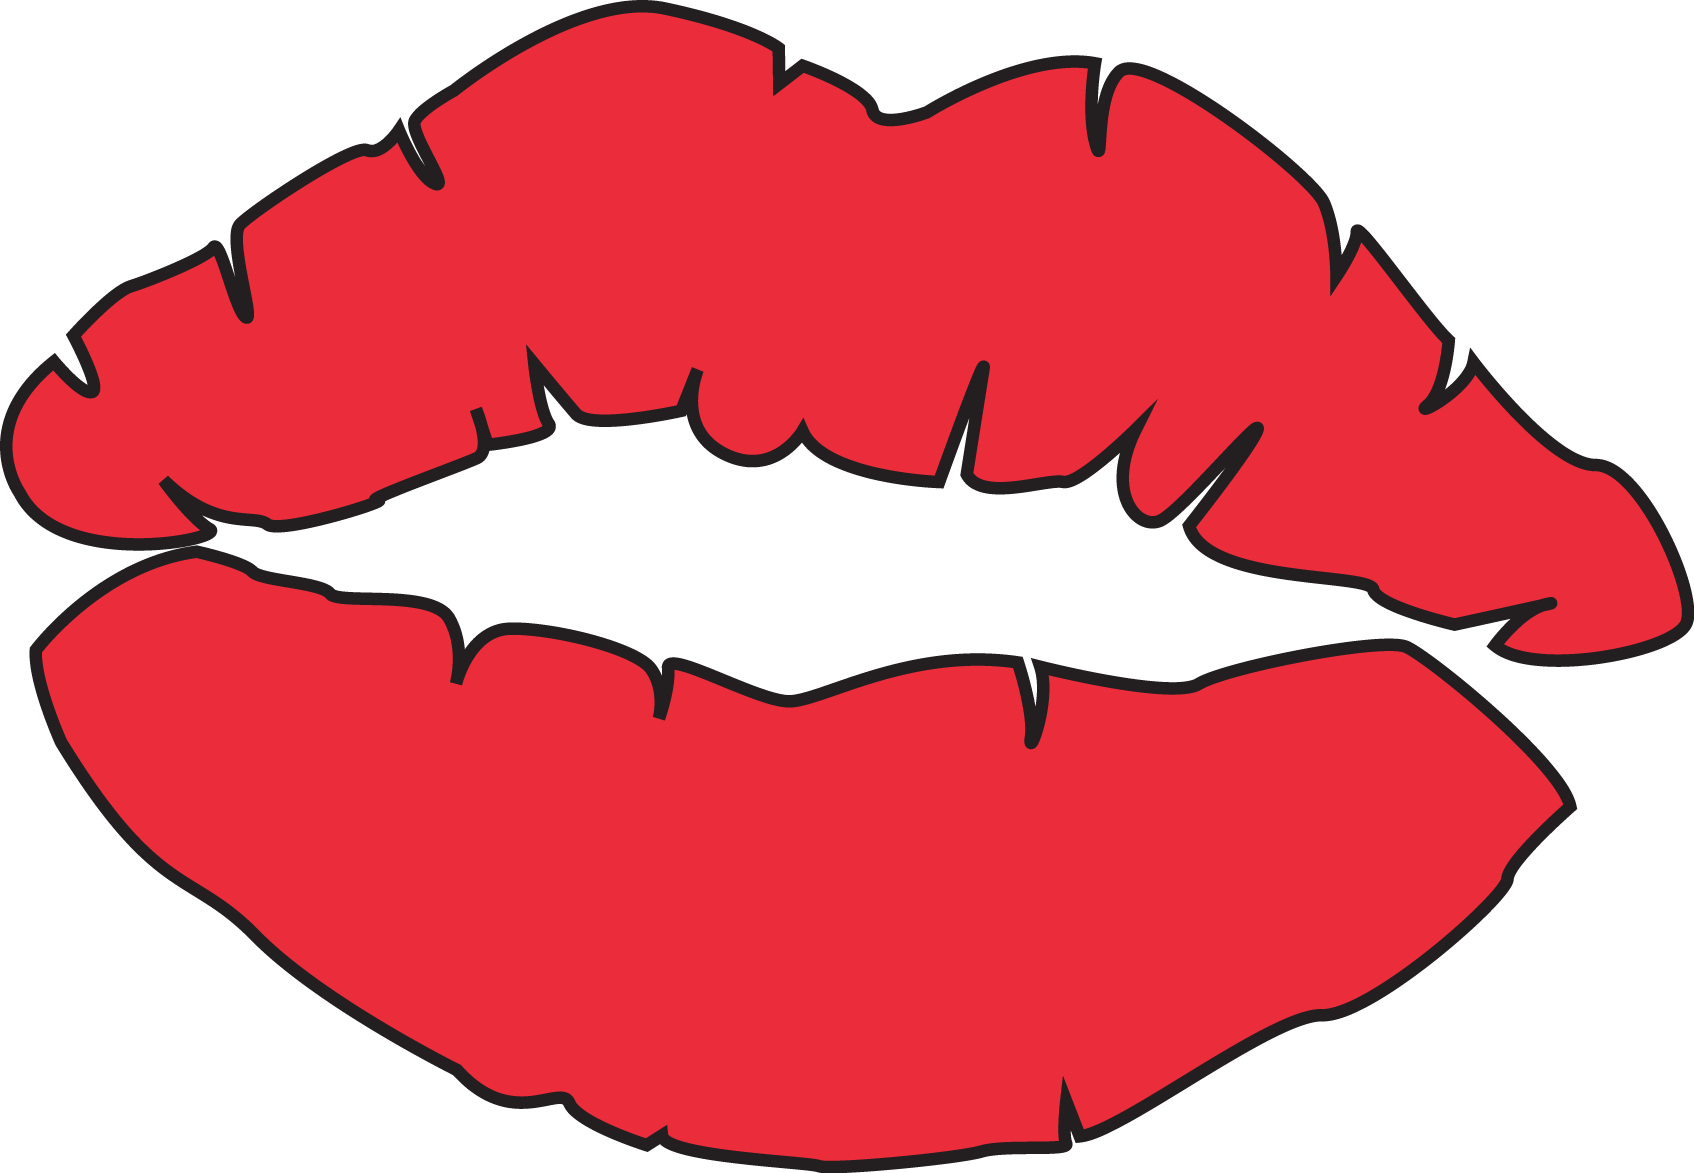 63 images of Lips Clip Art Free . You can use these free cliparts for ...